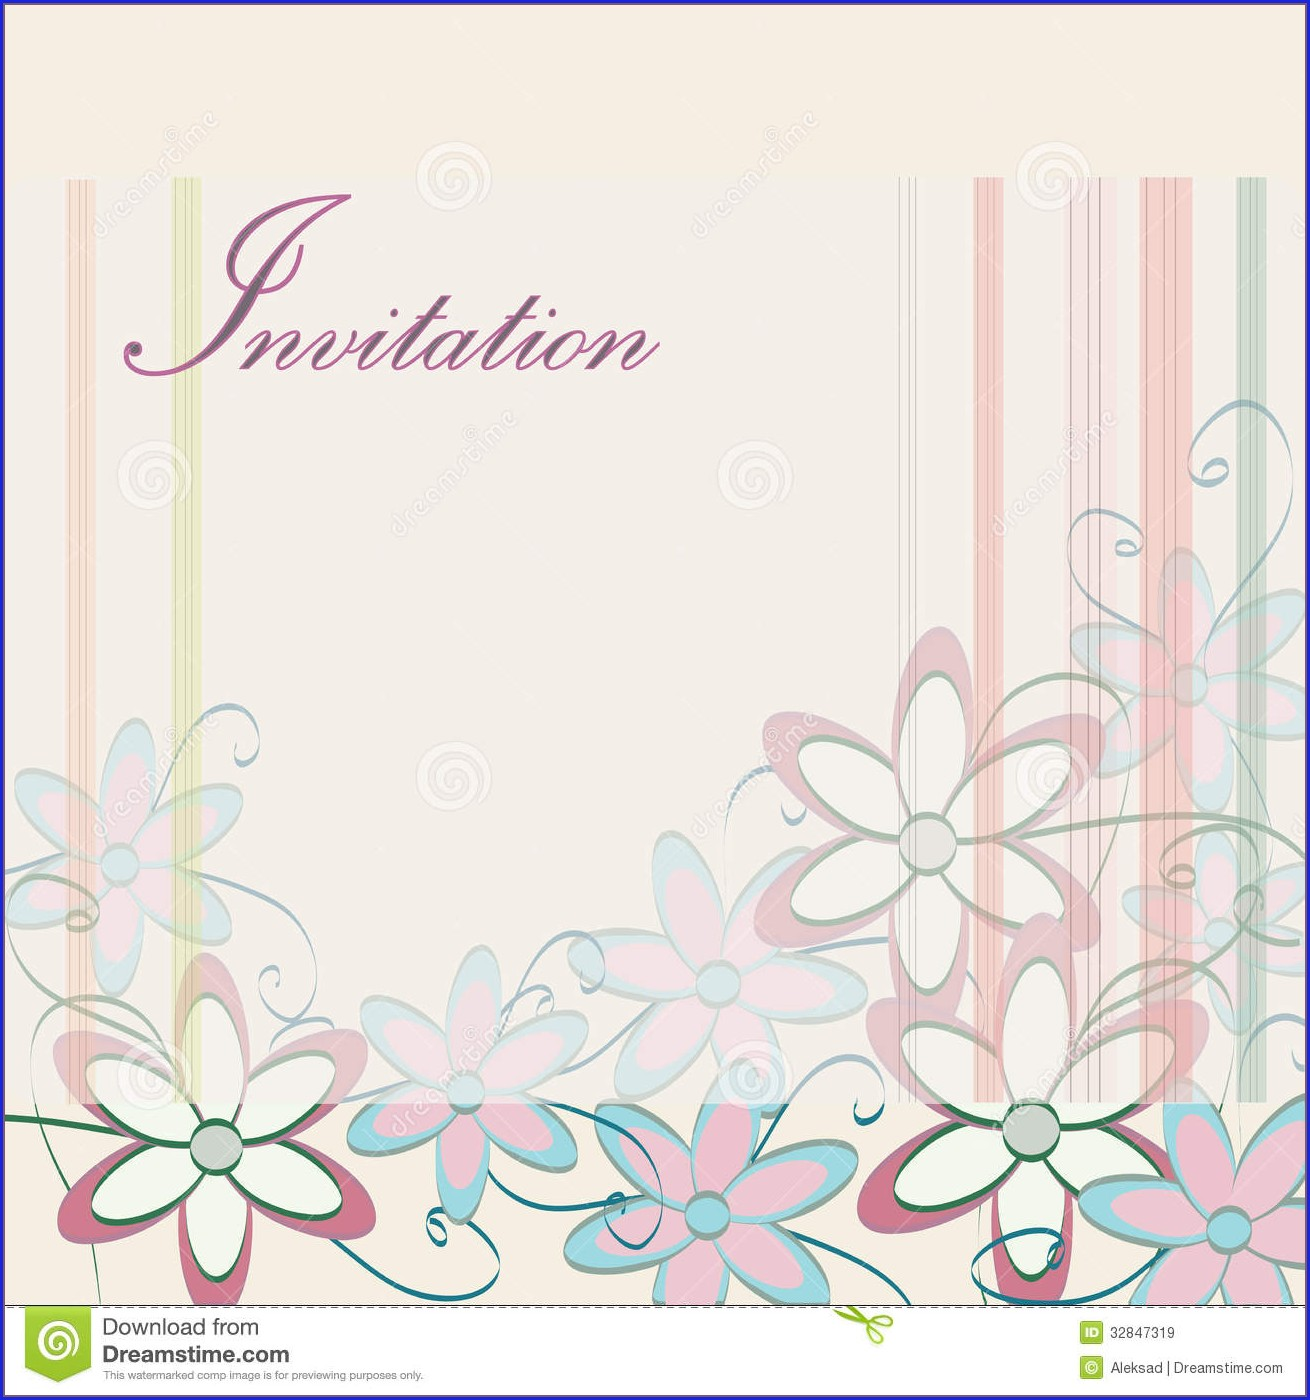 Invitation Images Free Download